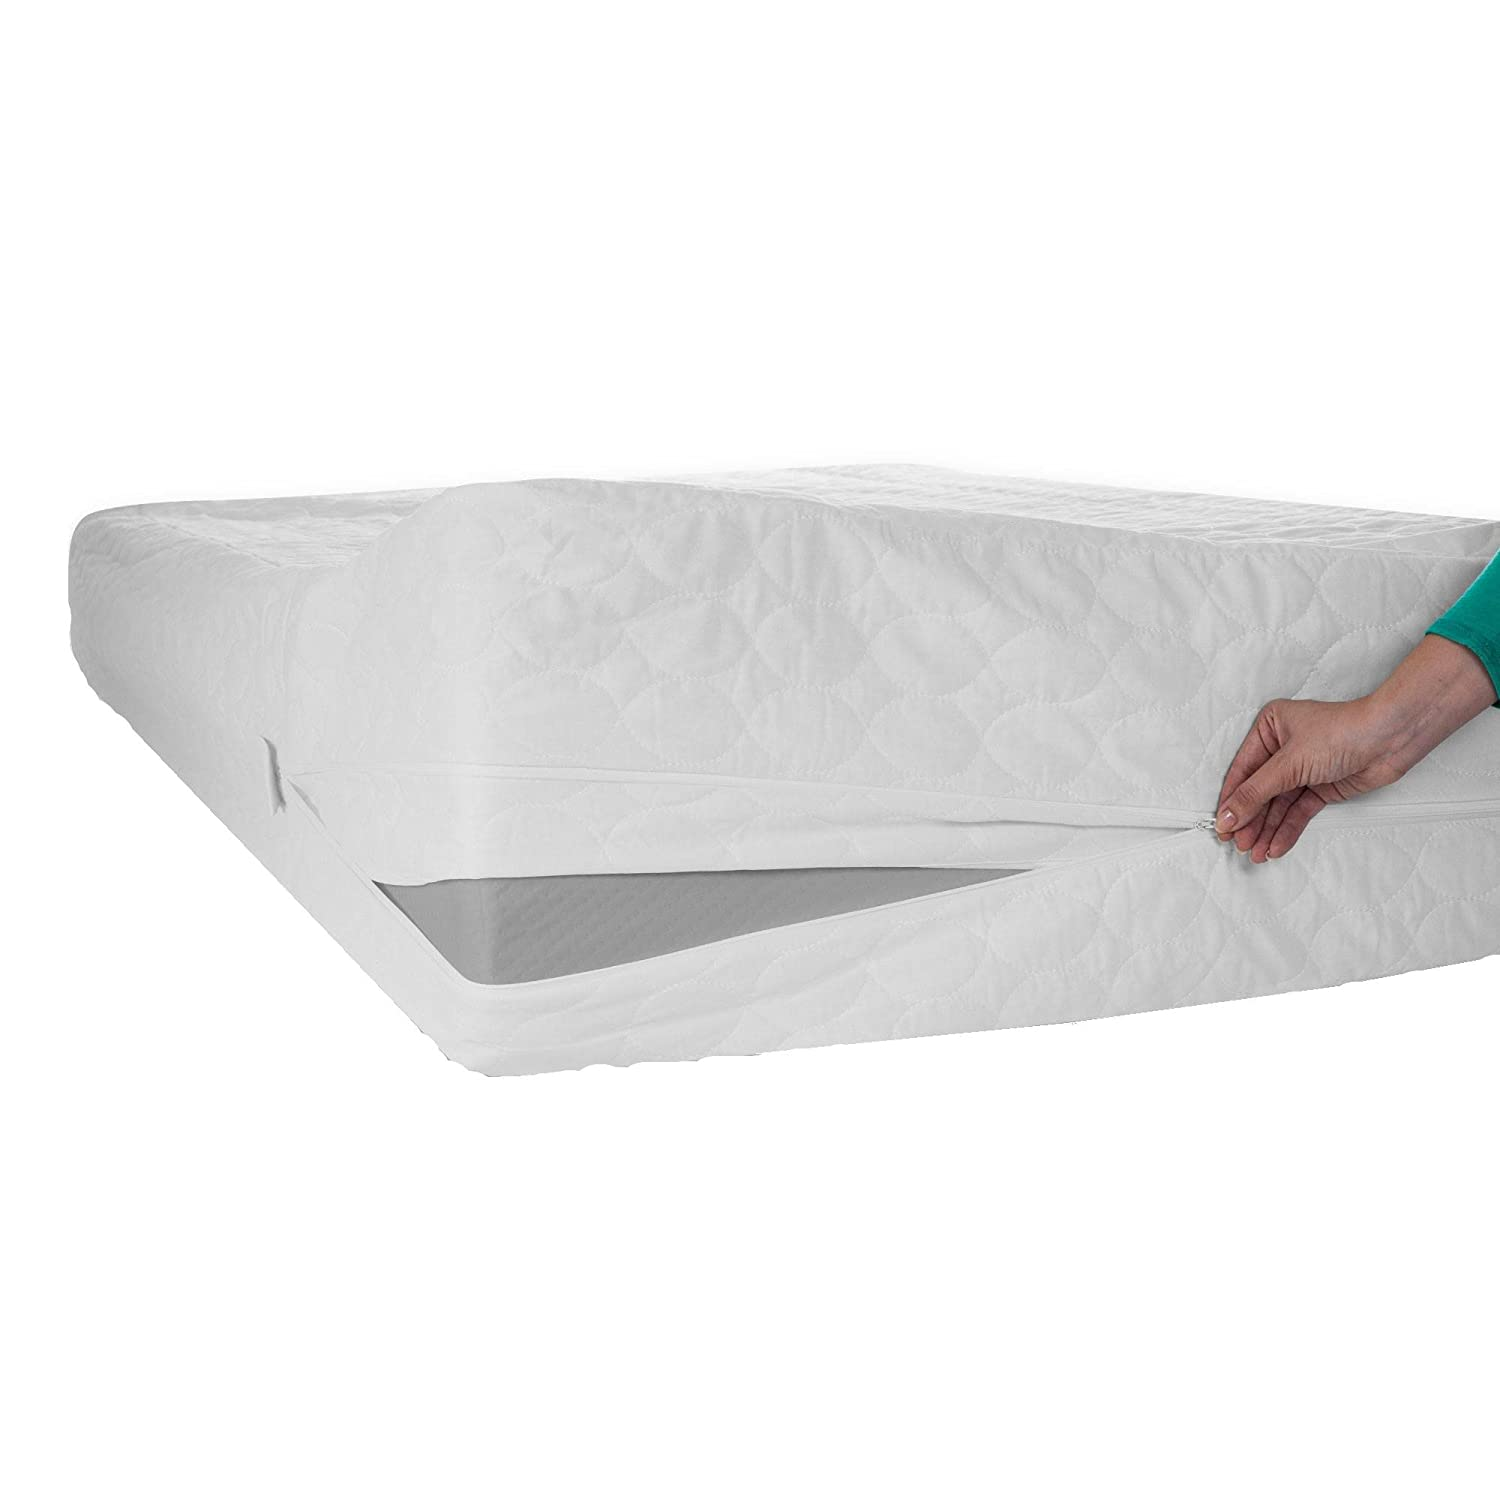 Zen Master Bed Bug Dust Mite Mattress Protector, Twin X-Large 64-00001-TXL-AW